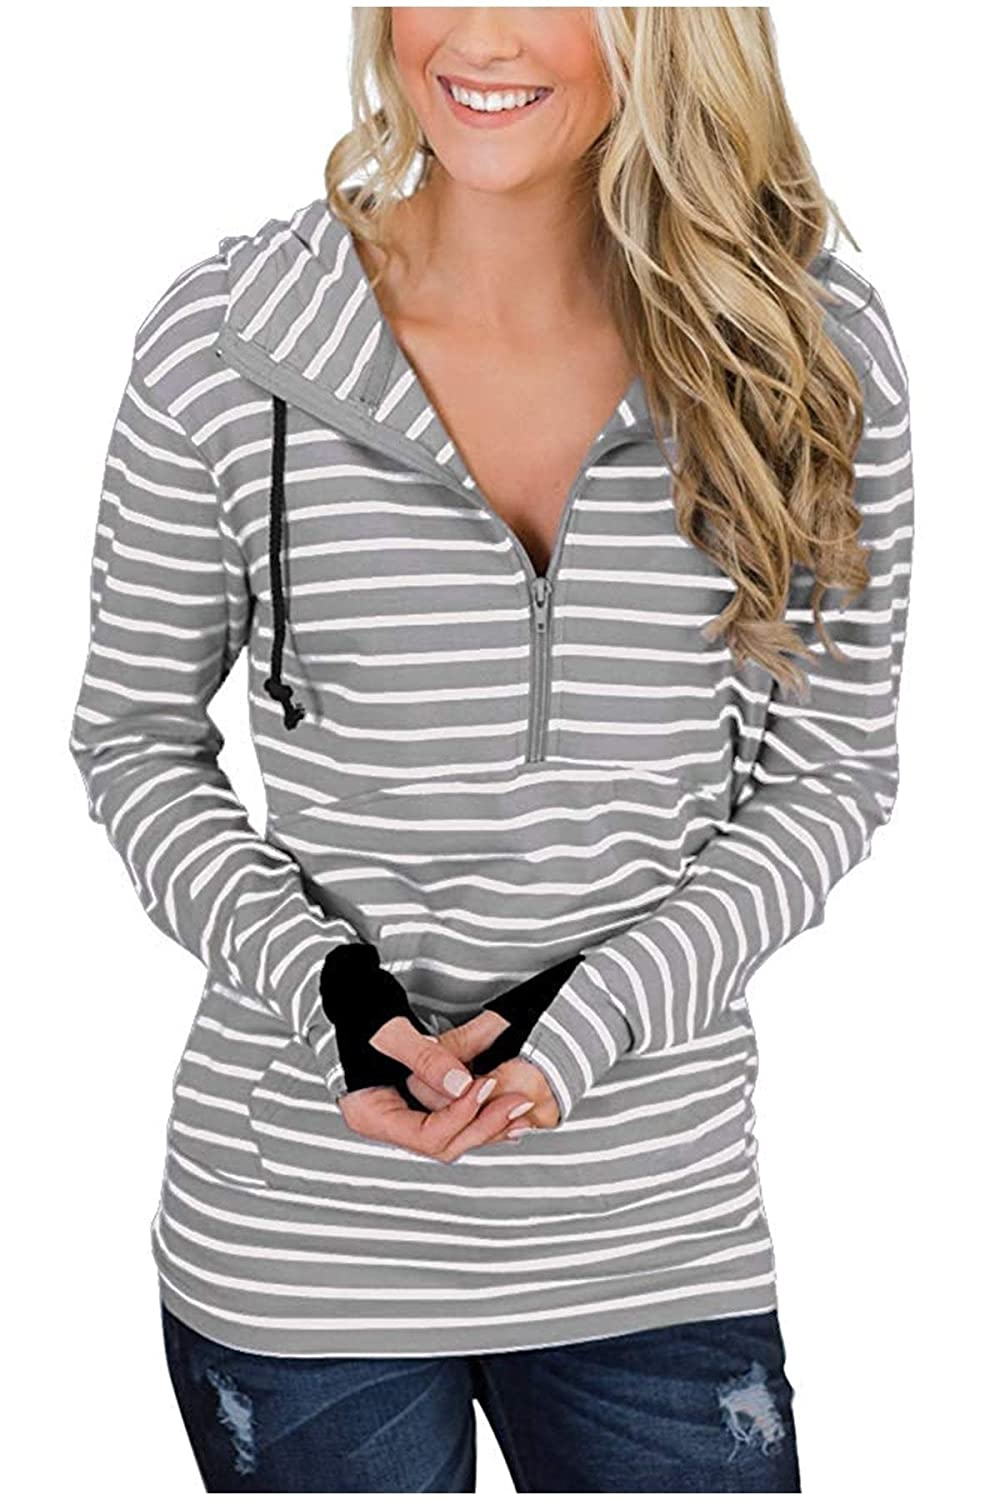 SportsX Women Casual Loose Fit Pocketed Zipper Stripe Pullover Shirts Top